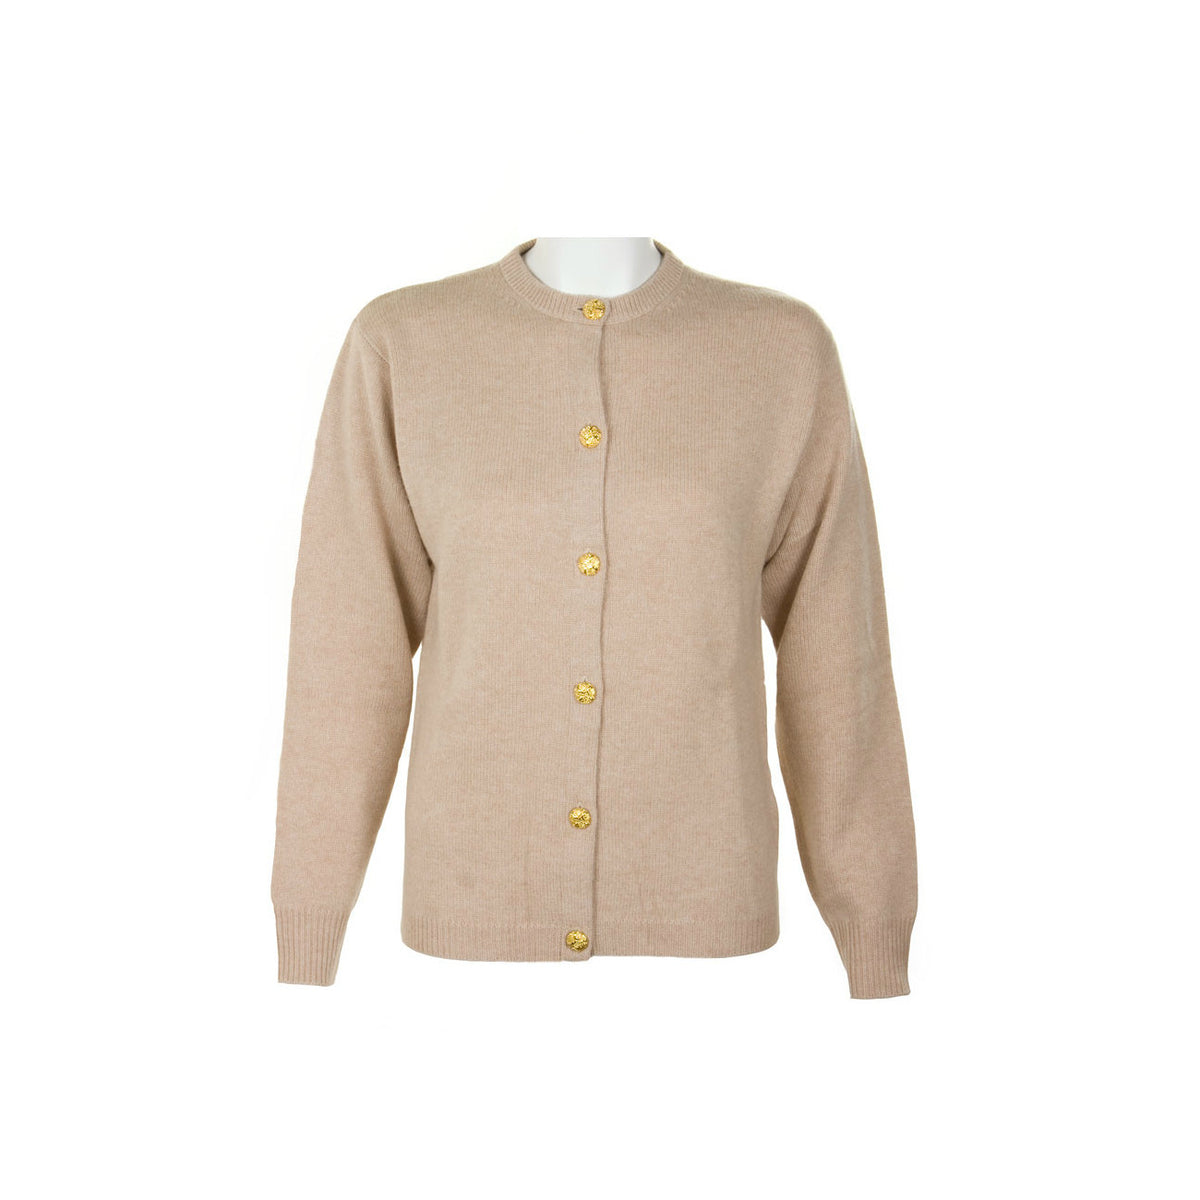 Ladies 3-Ply Cashmere Cardigan | Beige | Shop at The Cashmere Choice | London